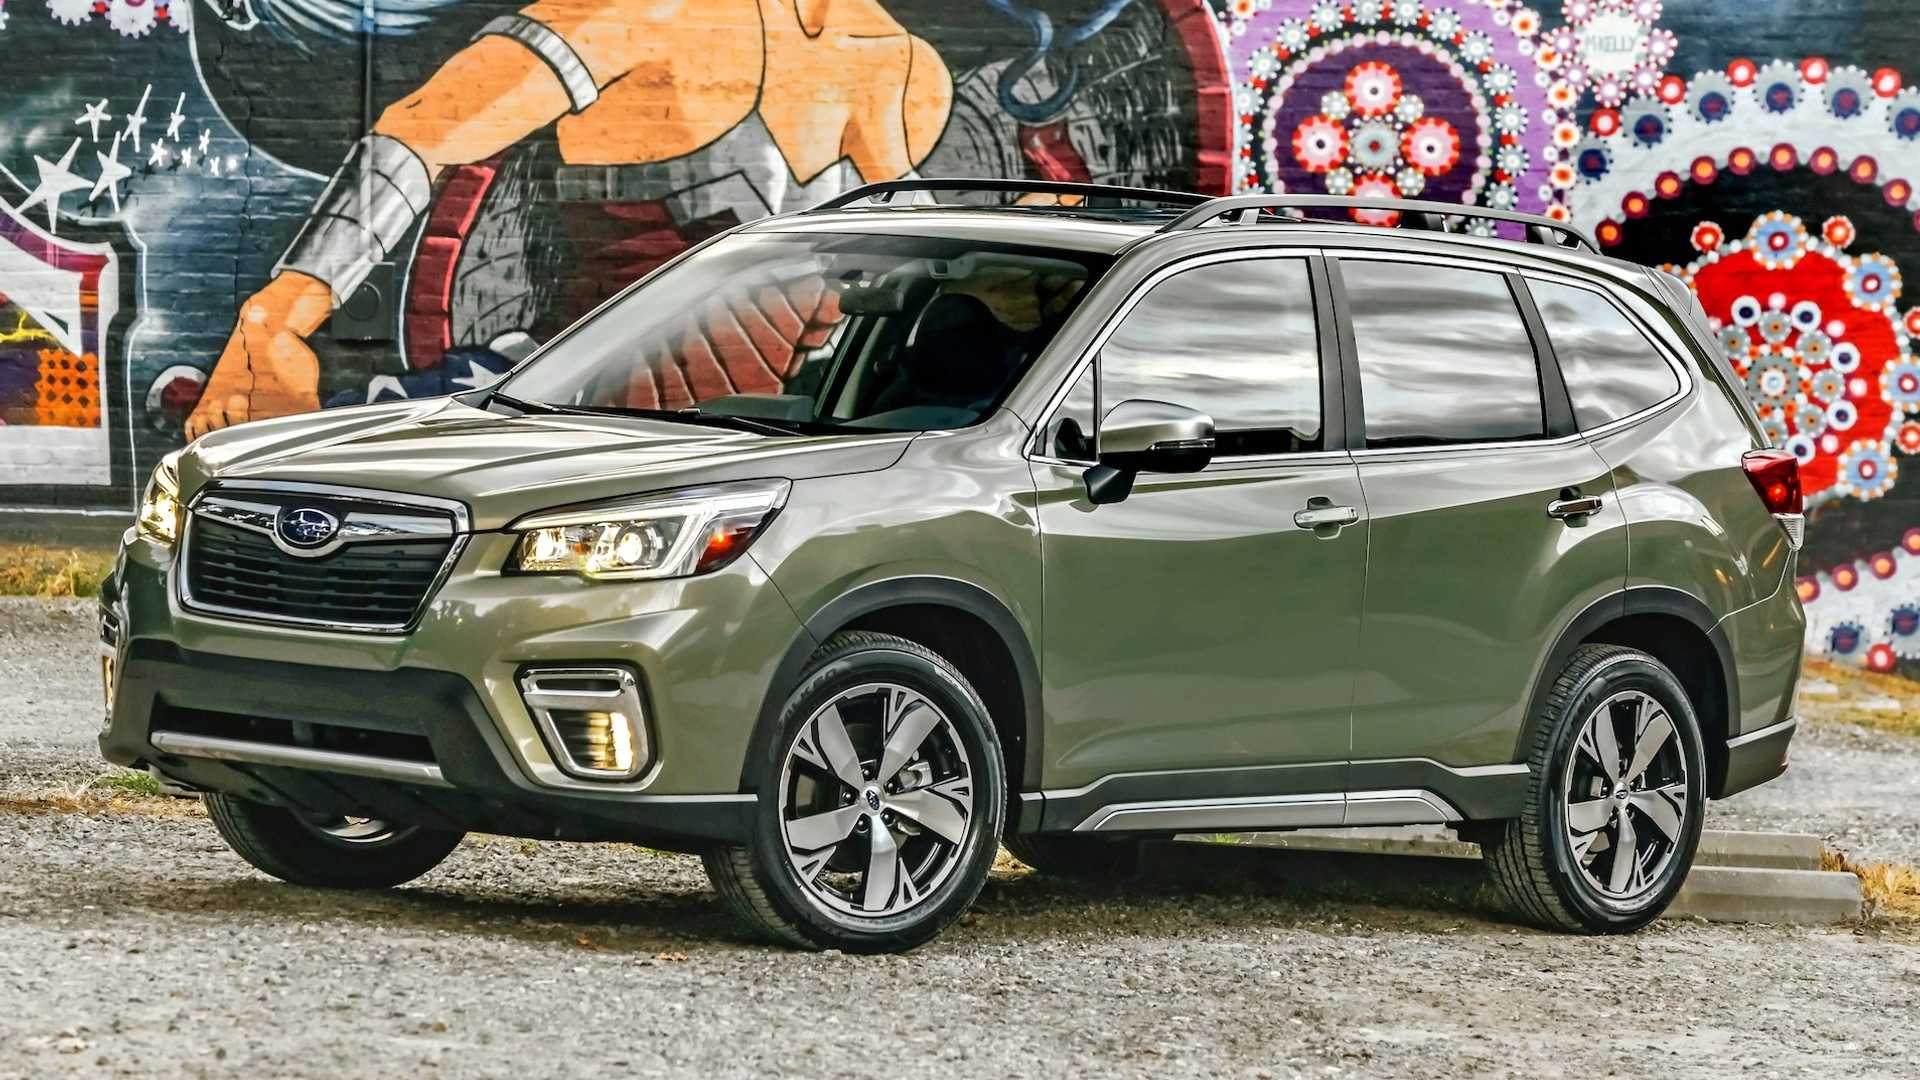 43 Concept of Subaru Forester 2020 New Concept for Subaru Forester 2020